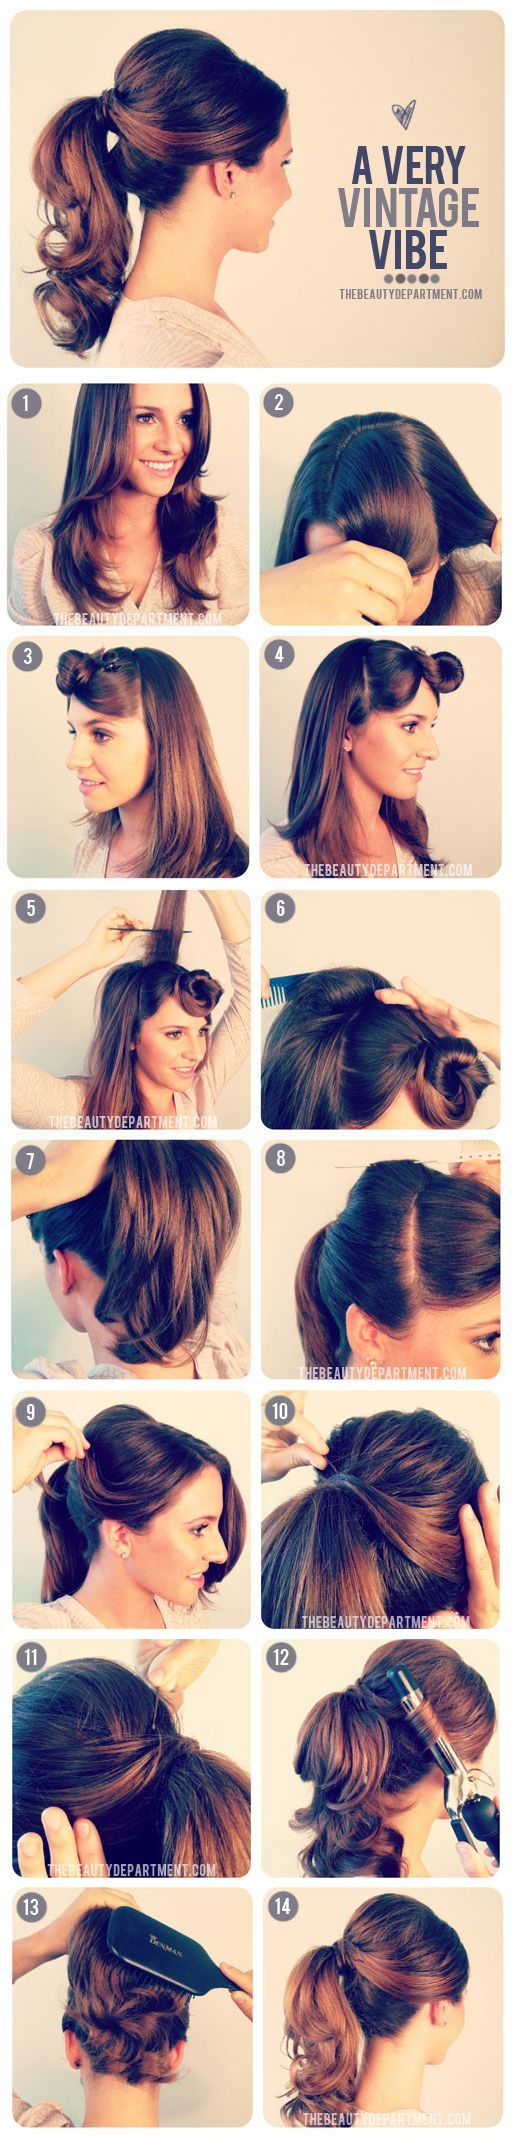 vintage how to hair styles! #diy #retro 1950′S INSPIRED PONYTAIL